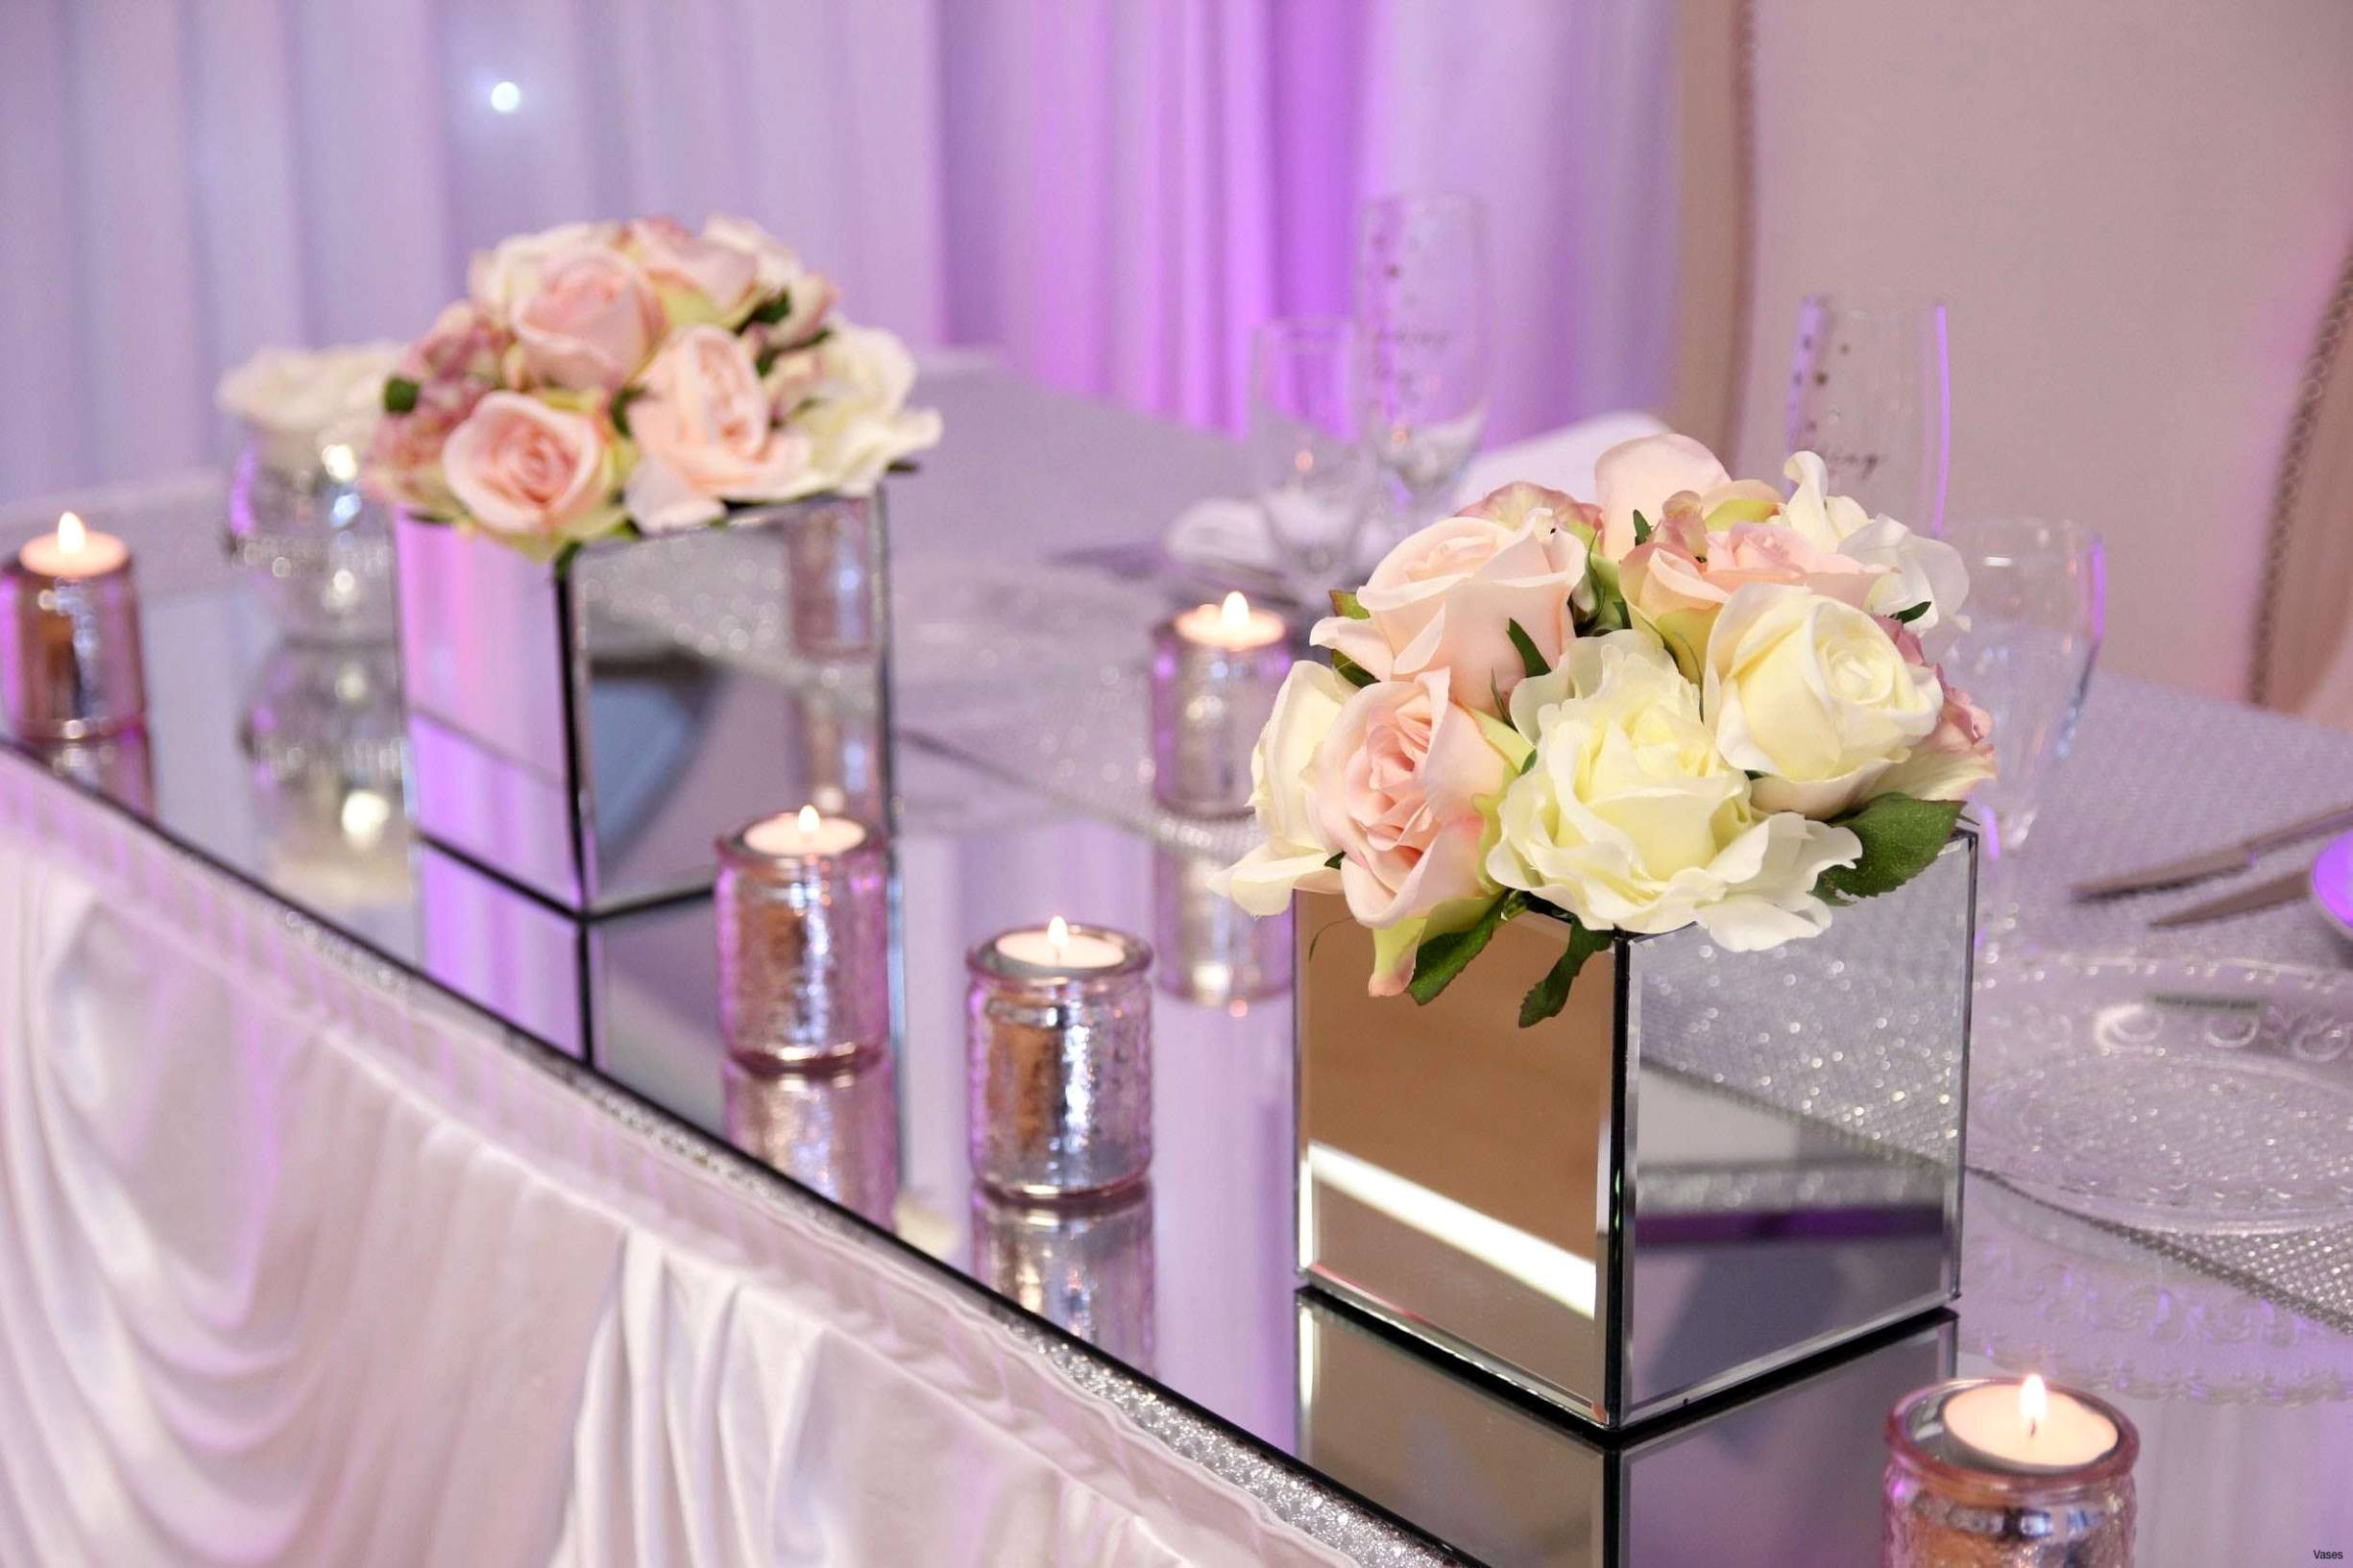 throwing a vase of table setting ideas for wedding reception minimalist mirrored square intended for table setting ideas for wedding reception minimalist mirrored square vase 3h vases mirror table decorationi 0d